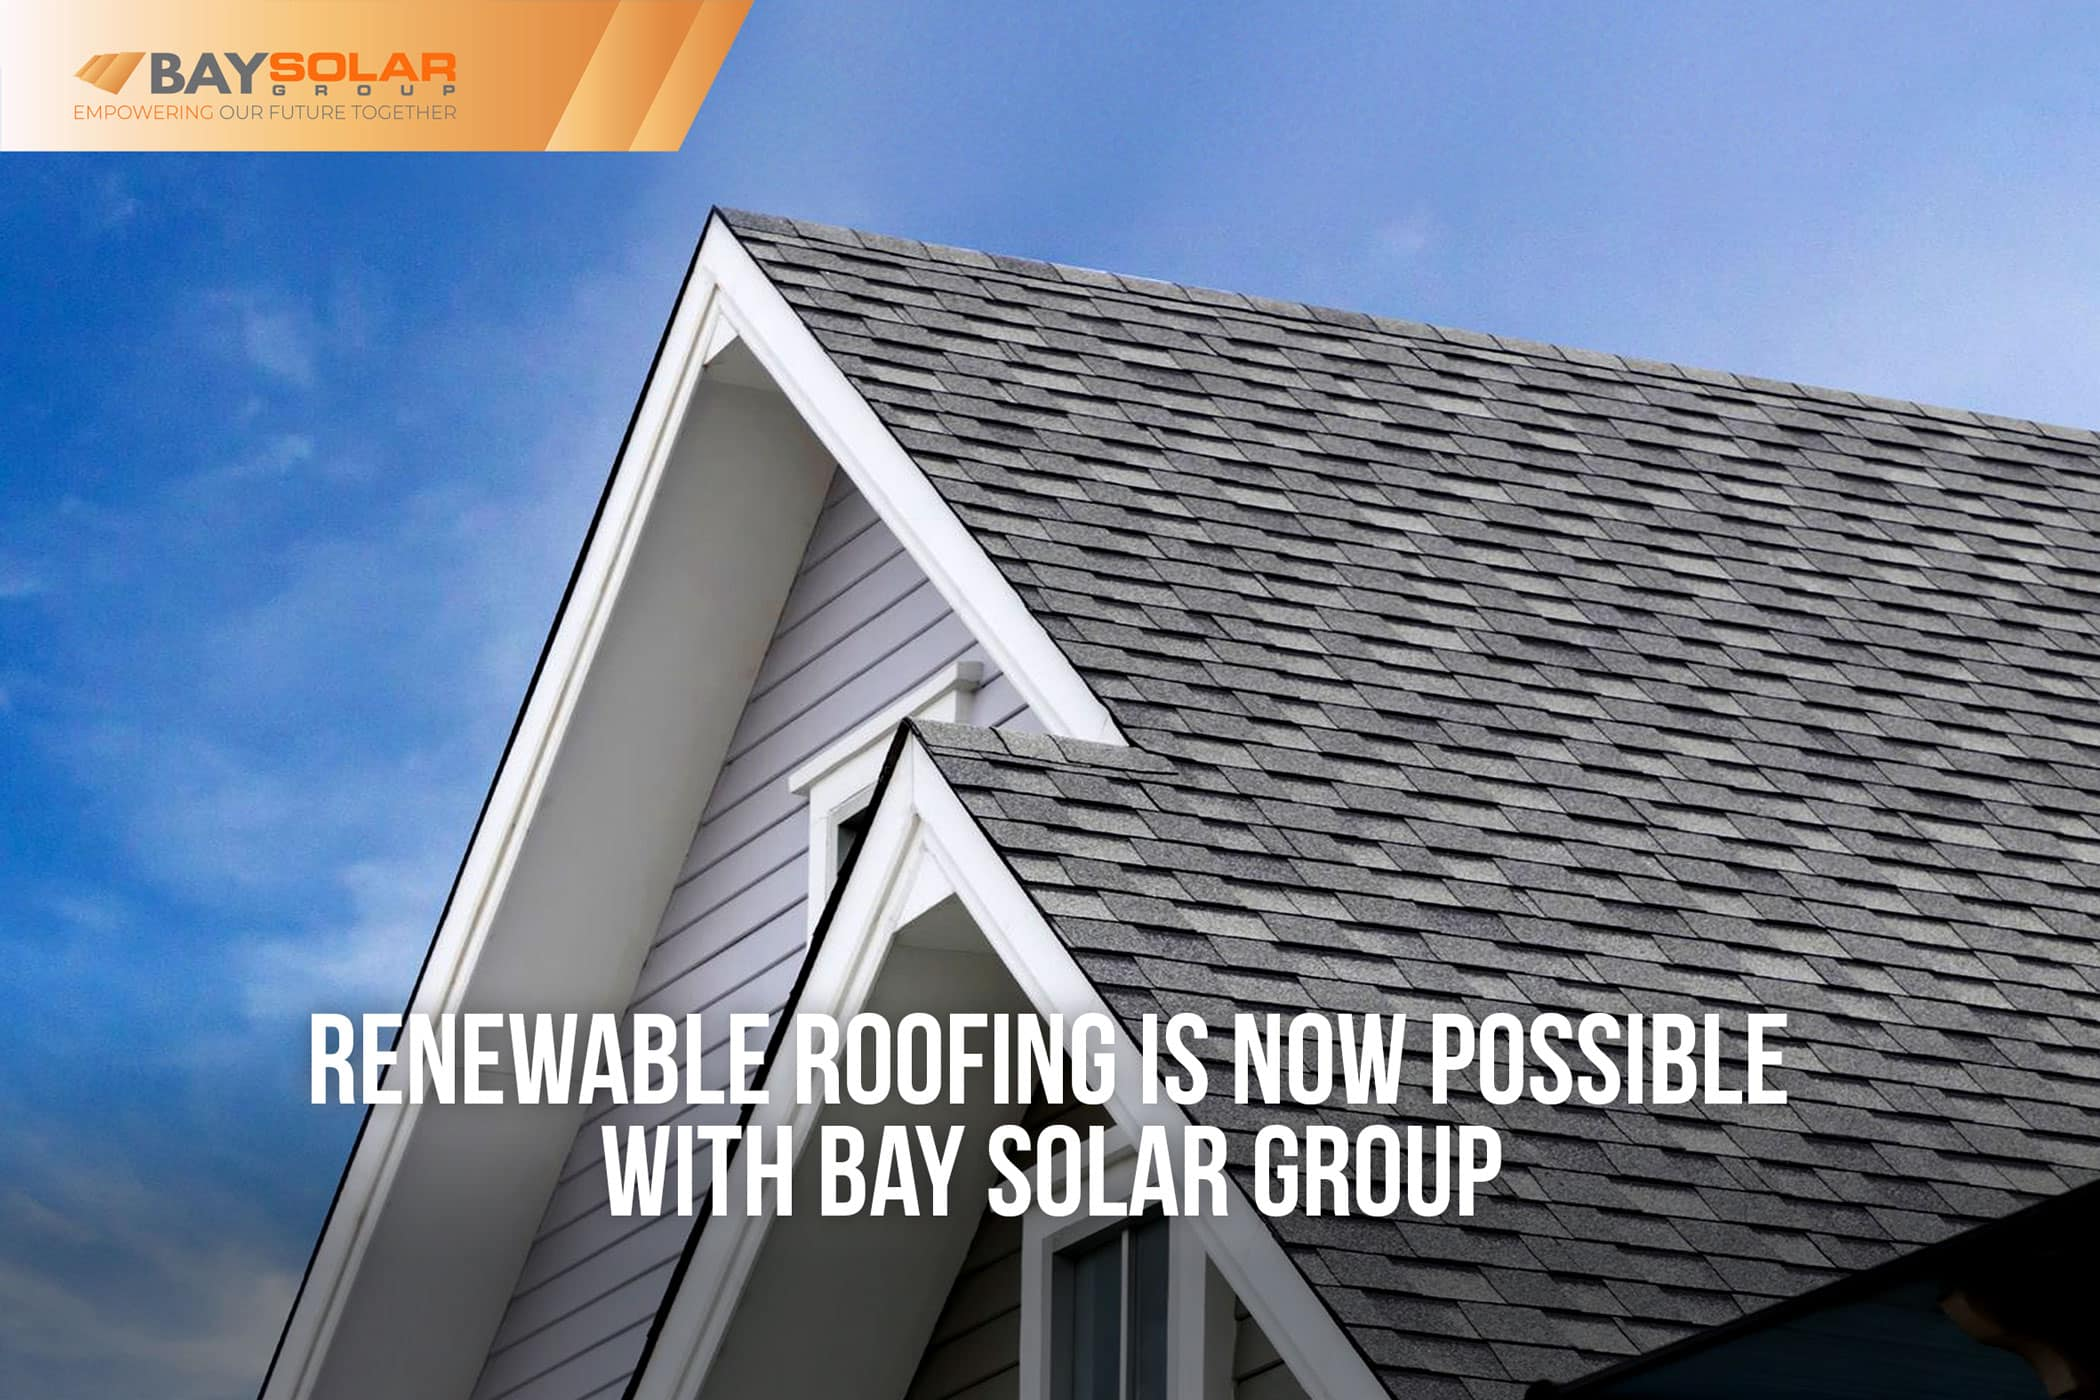 Grey-Roofing-Shingles-On-The-House-Roof